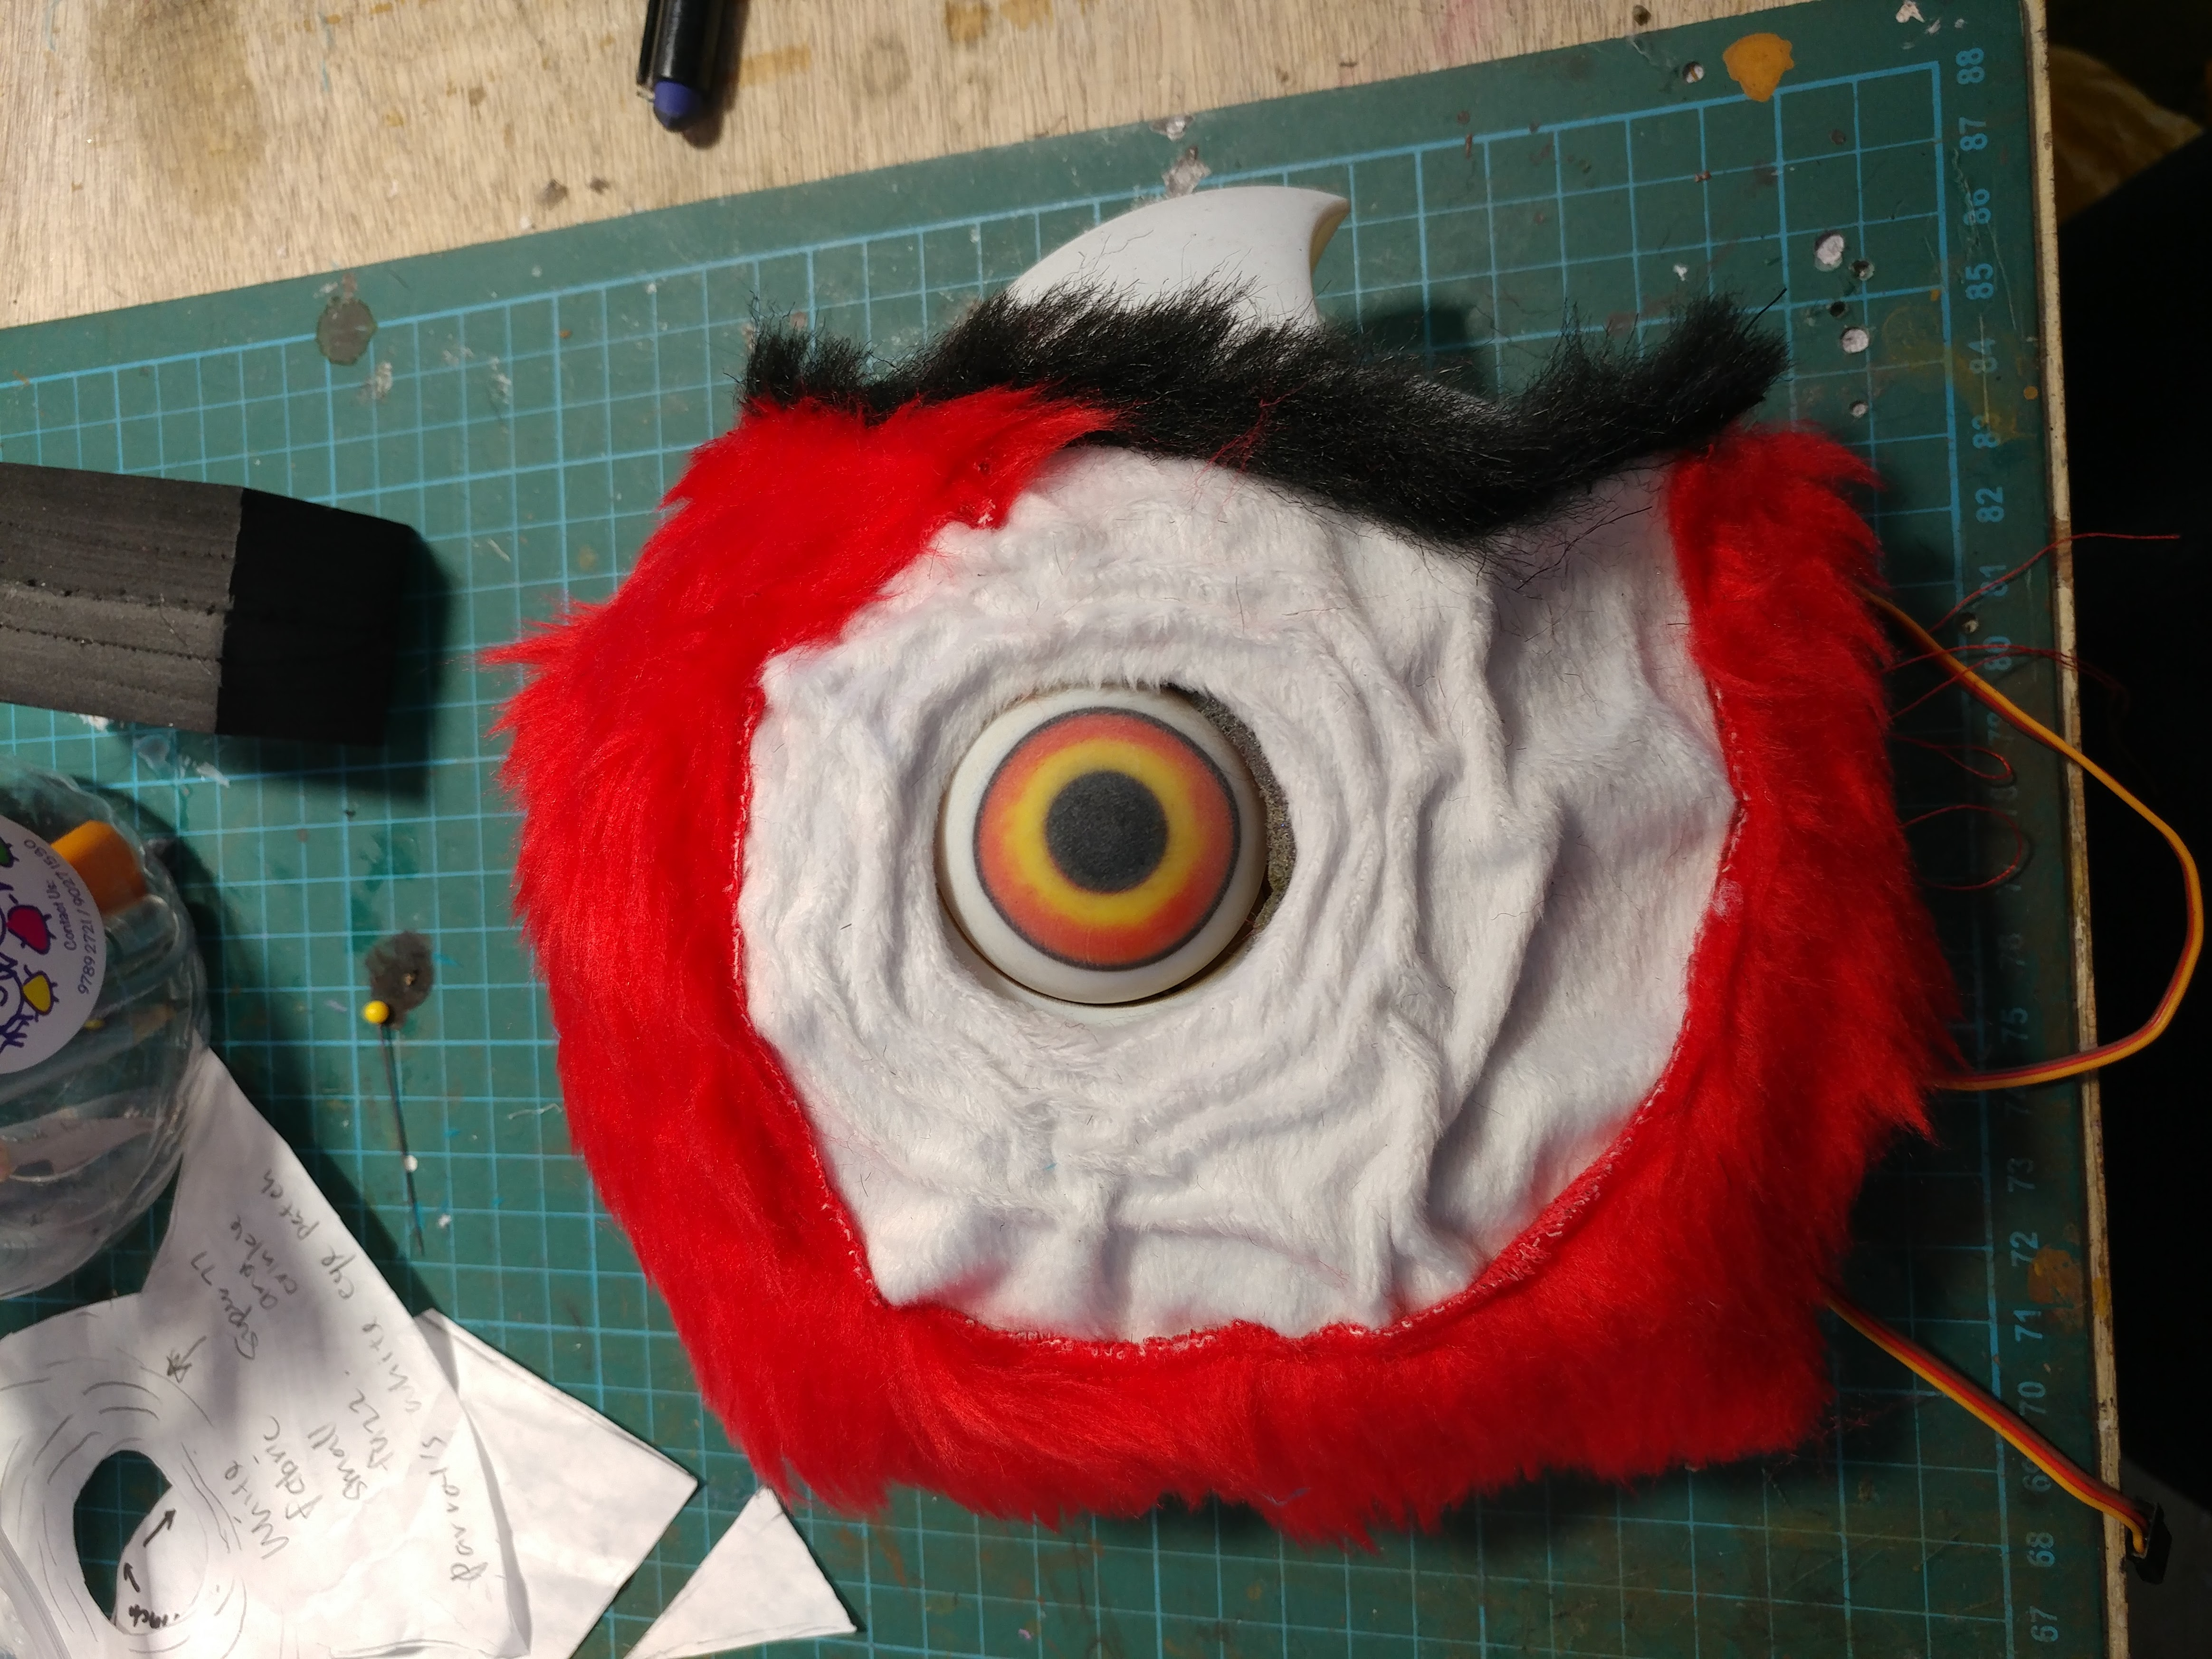 Head in Progress